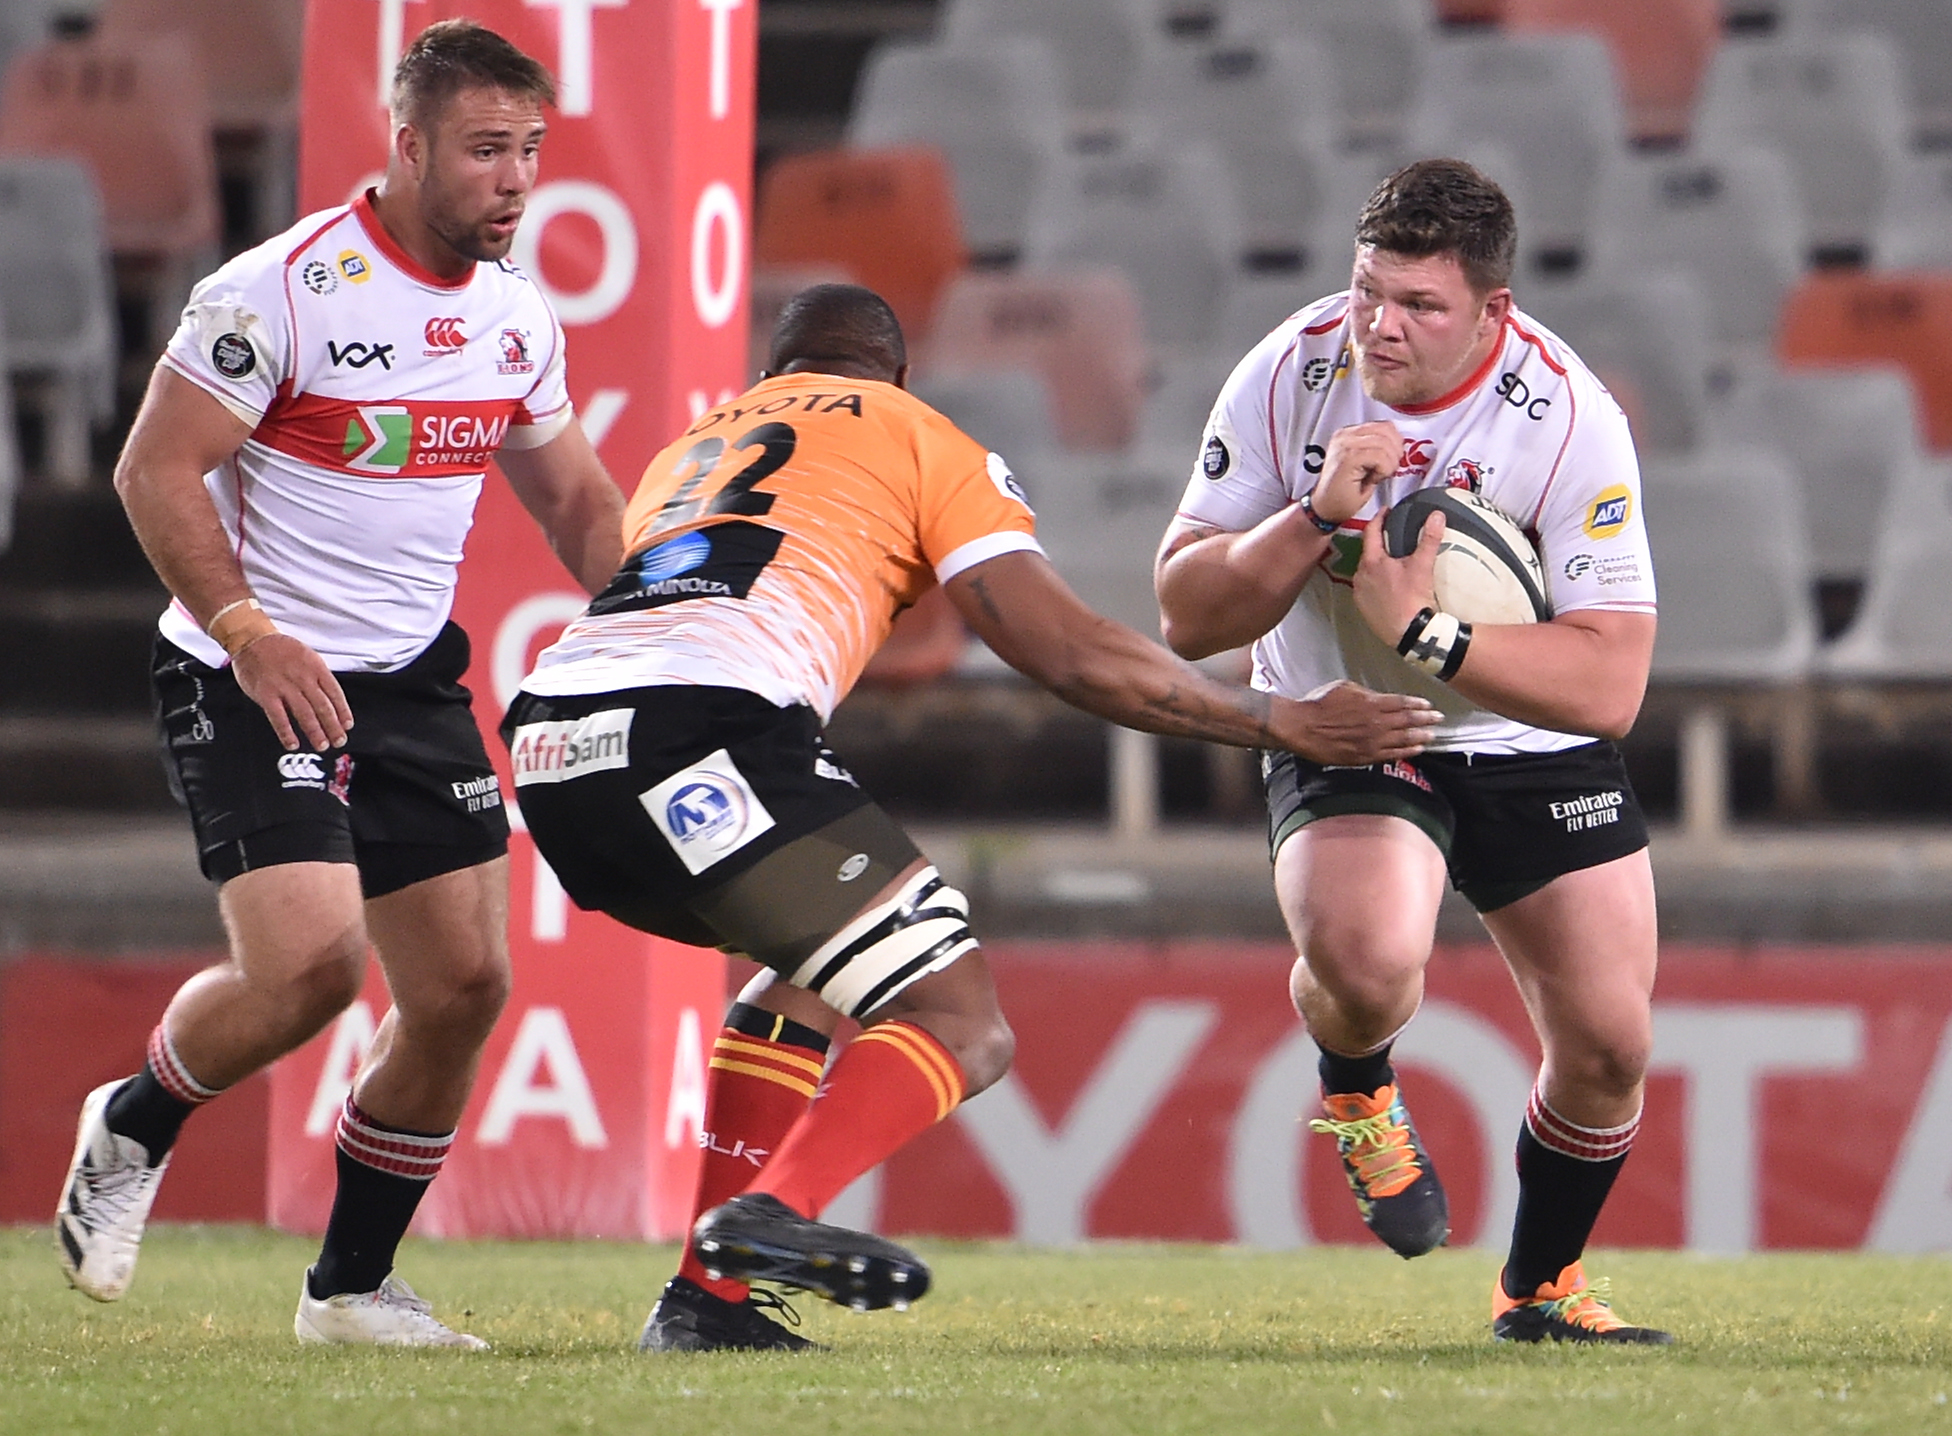 Lions youngster Nathan McBeth completes switch to Scotland - SARugbymag